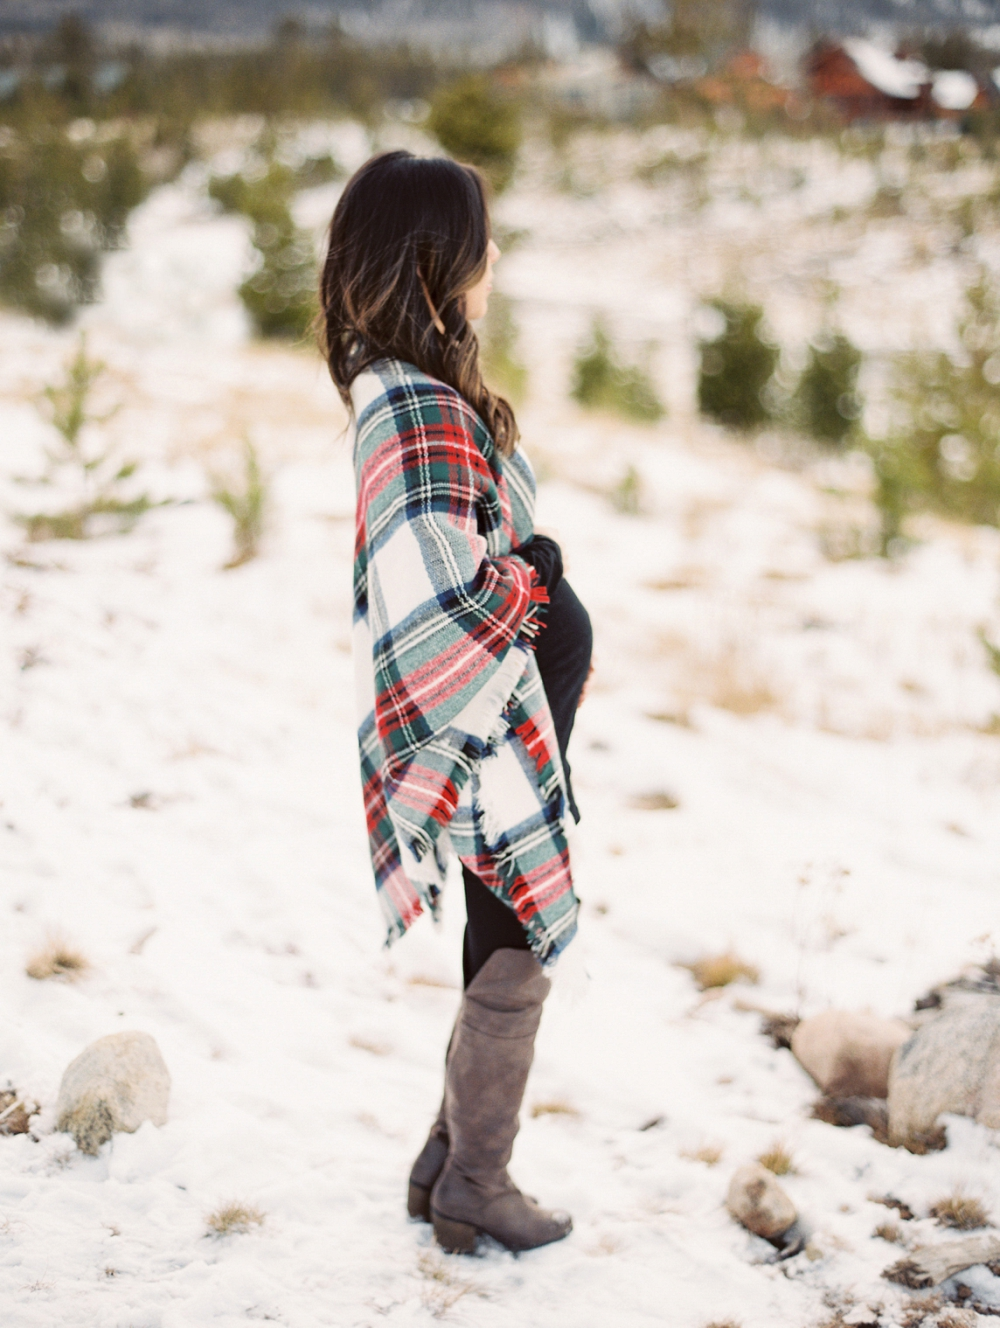 Dani-Cowan-Photography-Snowy-Colorado-Mountain-Maternity-Photoshoot18_WEB